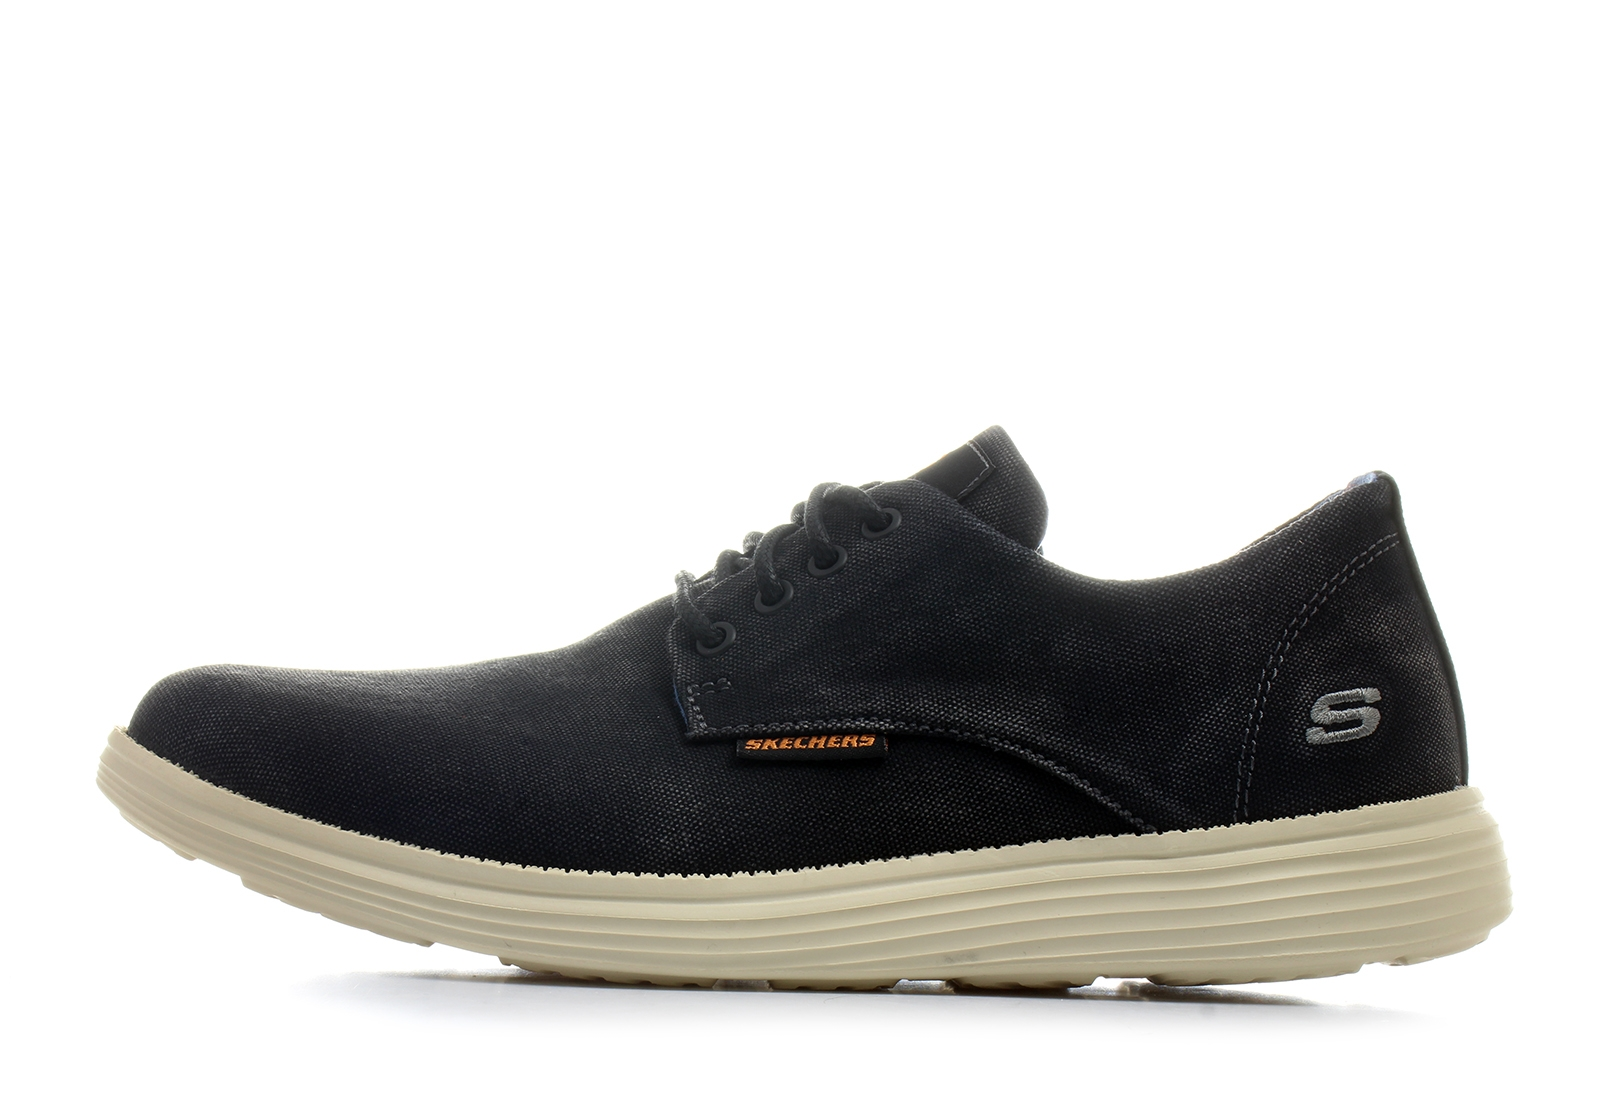 Skechers Shoes Status Borges 64629 blk Online shop for sneakers, shoes and boots